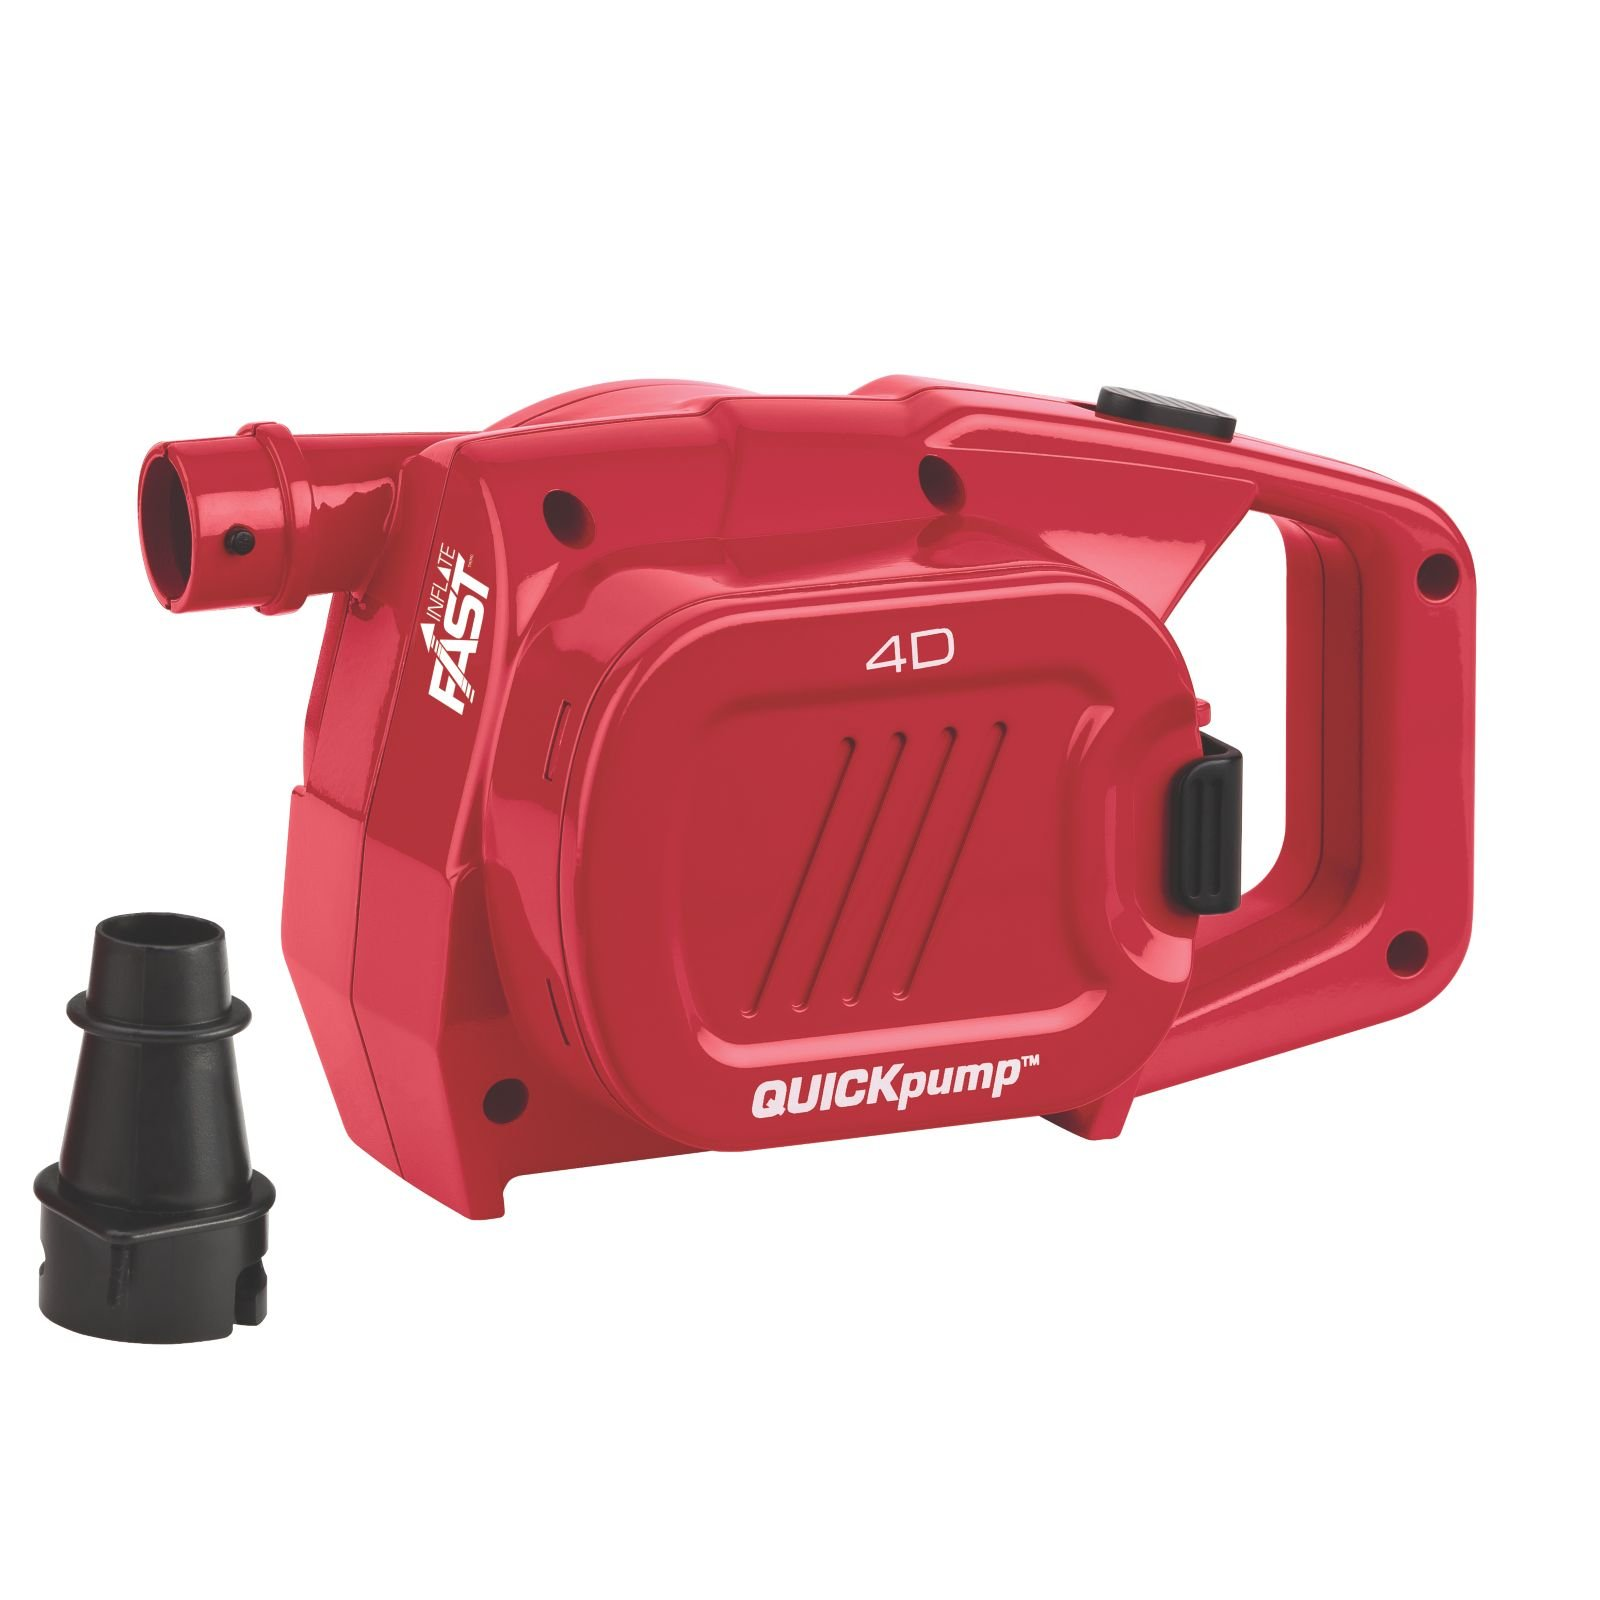 Coleman QuickPump 4D Electric Pump by Coleman